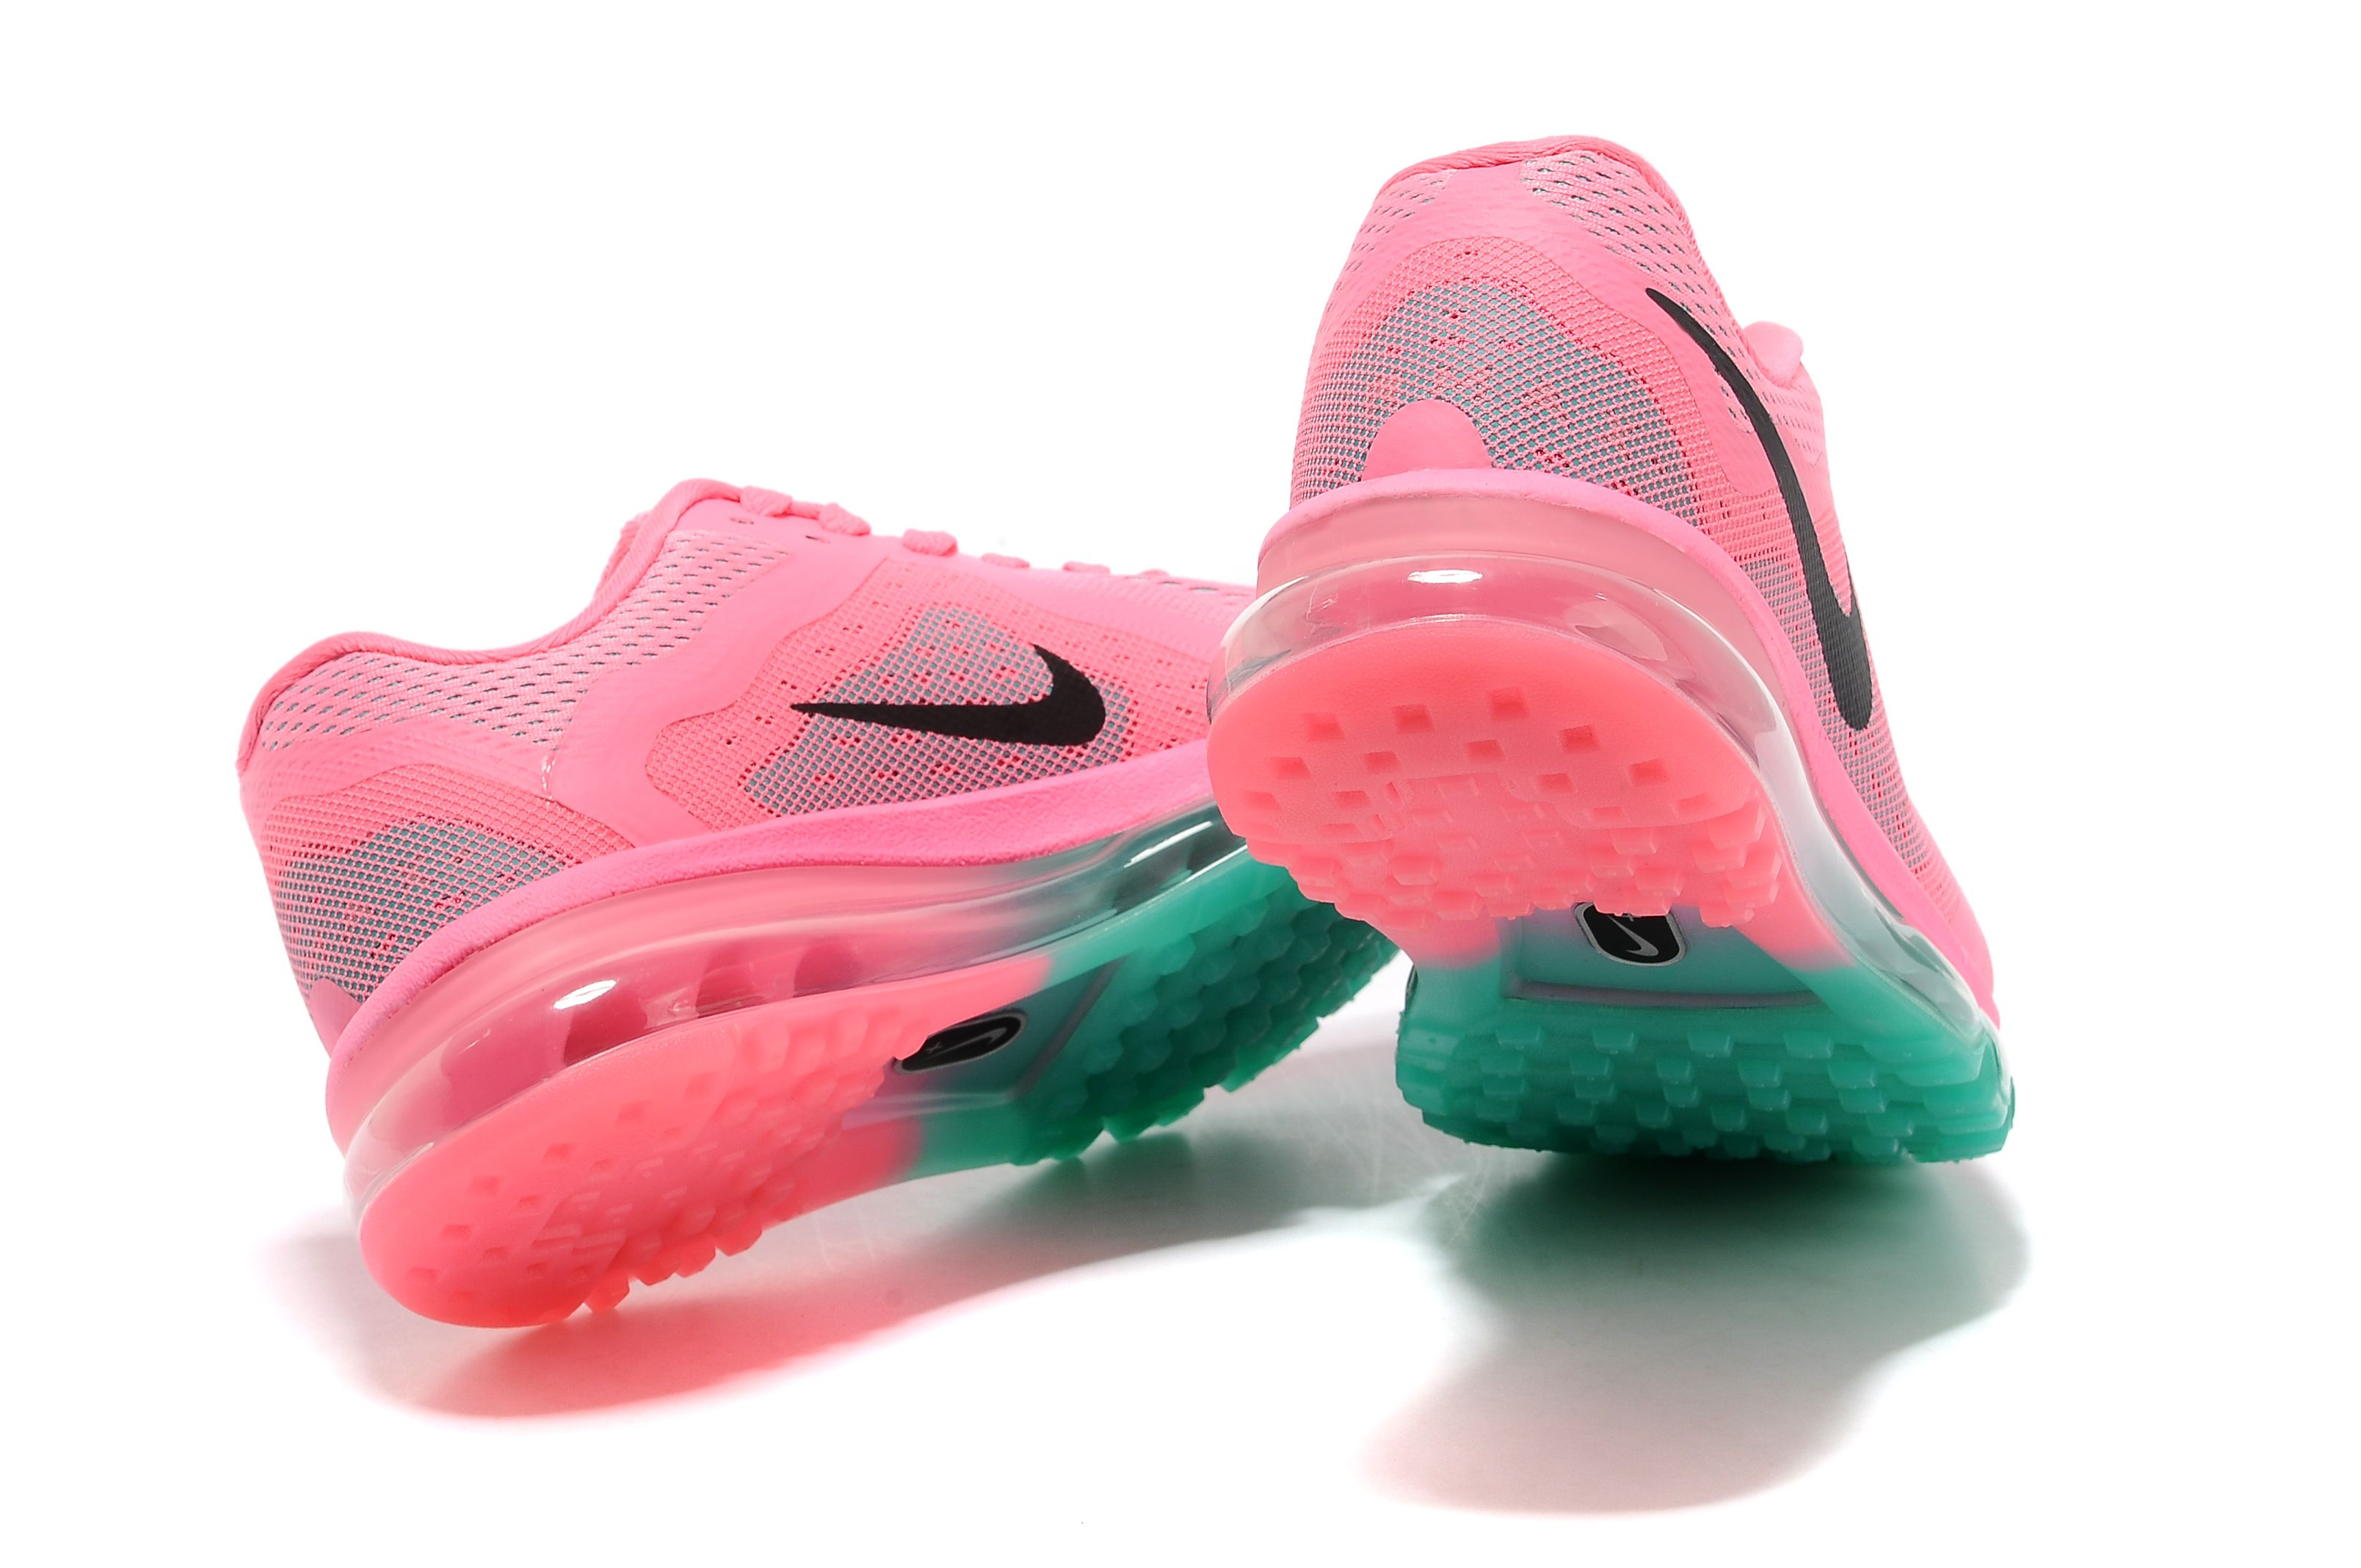 Nike Air Max 2014 Womens Running Shoes Pink Black Green